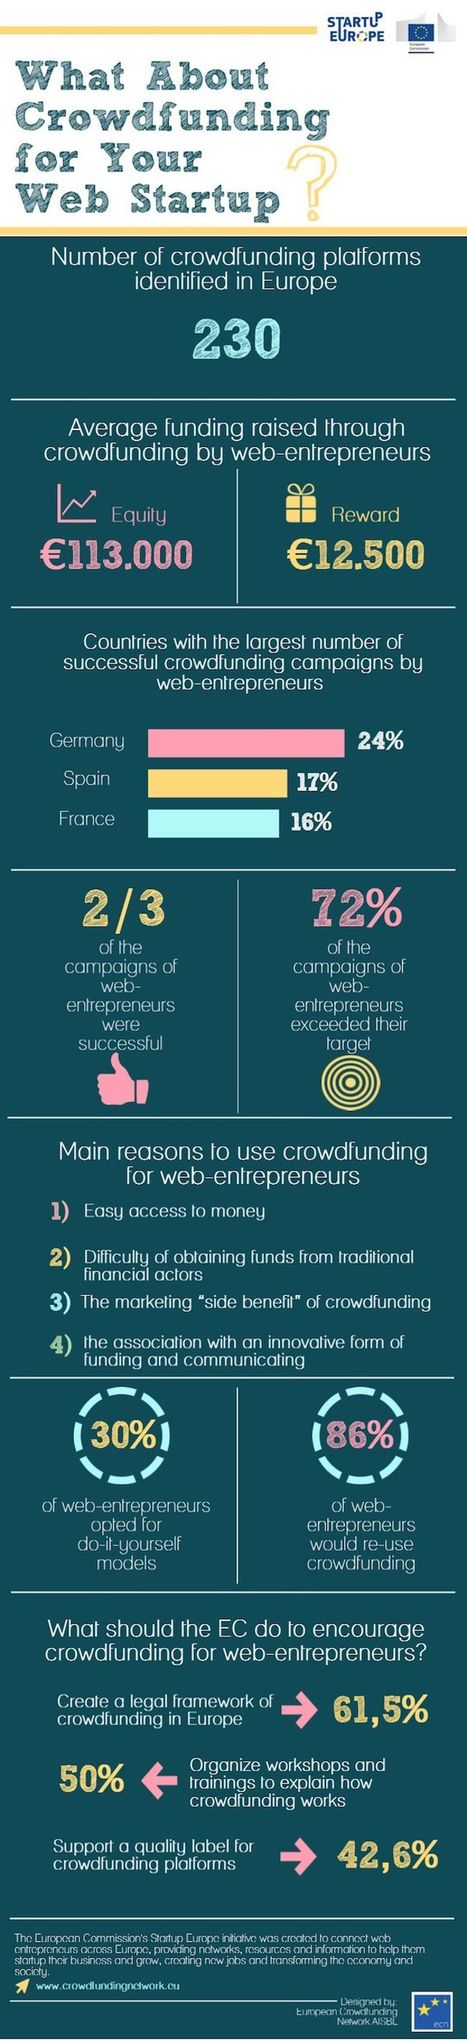 L'Europe compte 230 plate-formes de crowdfunding | networking people and companies | Scoop.it